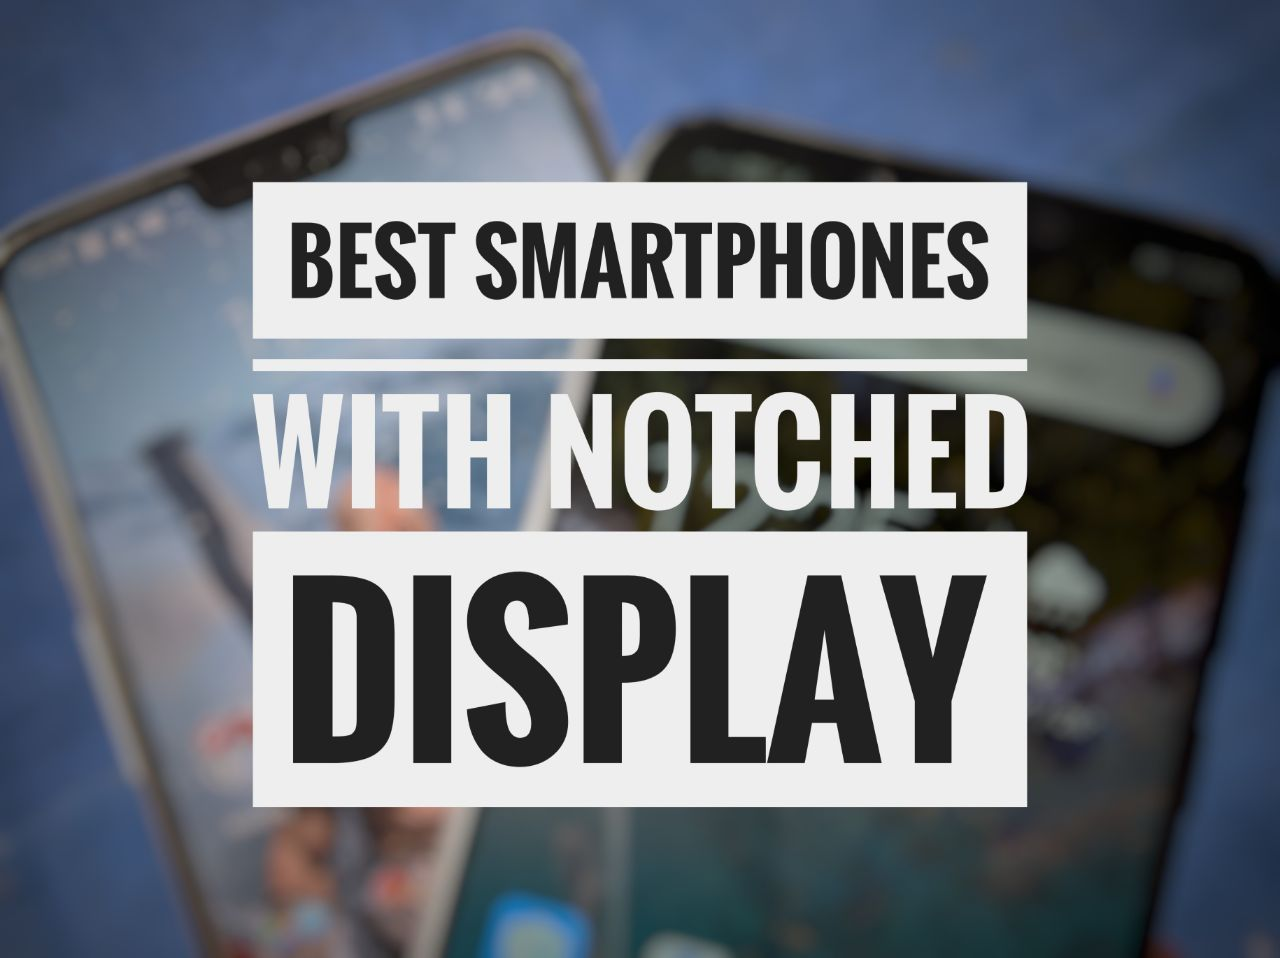 Best Smartphones with Notch